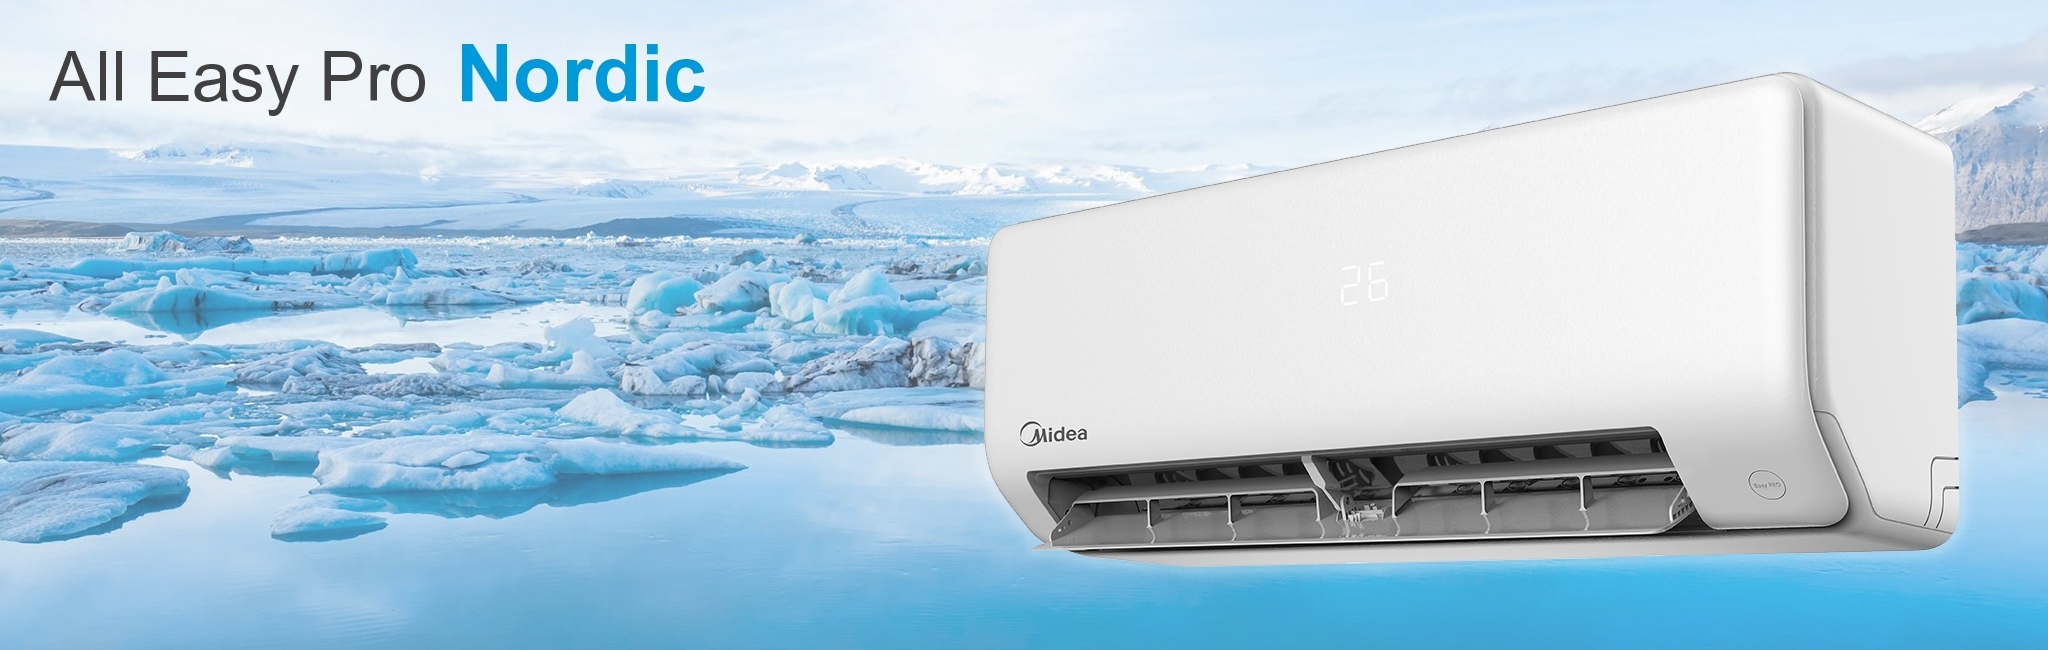 Choose All Easy Pro Nordic air conditioners for your house.